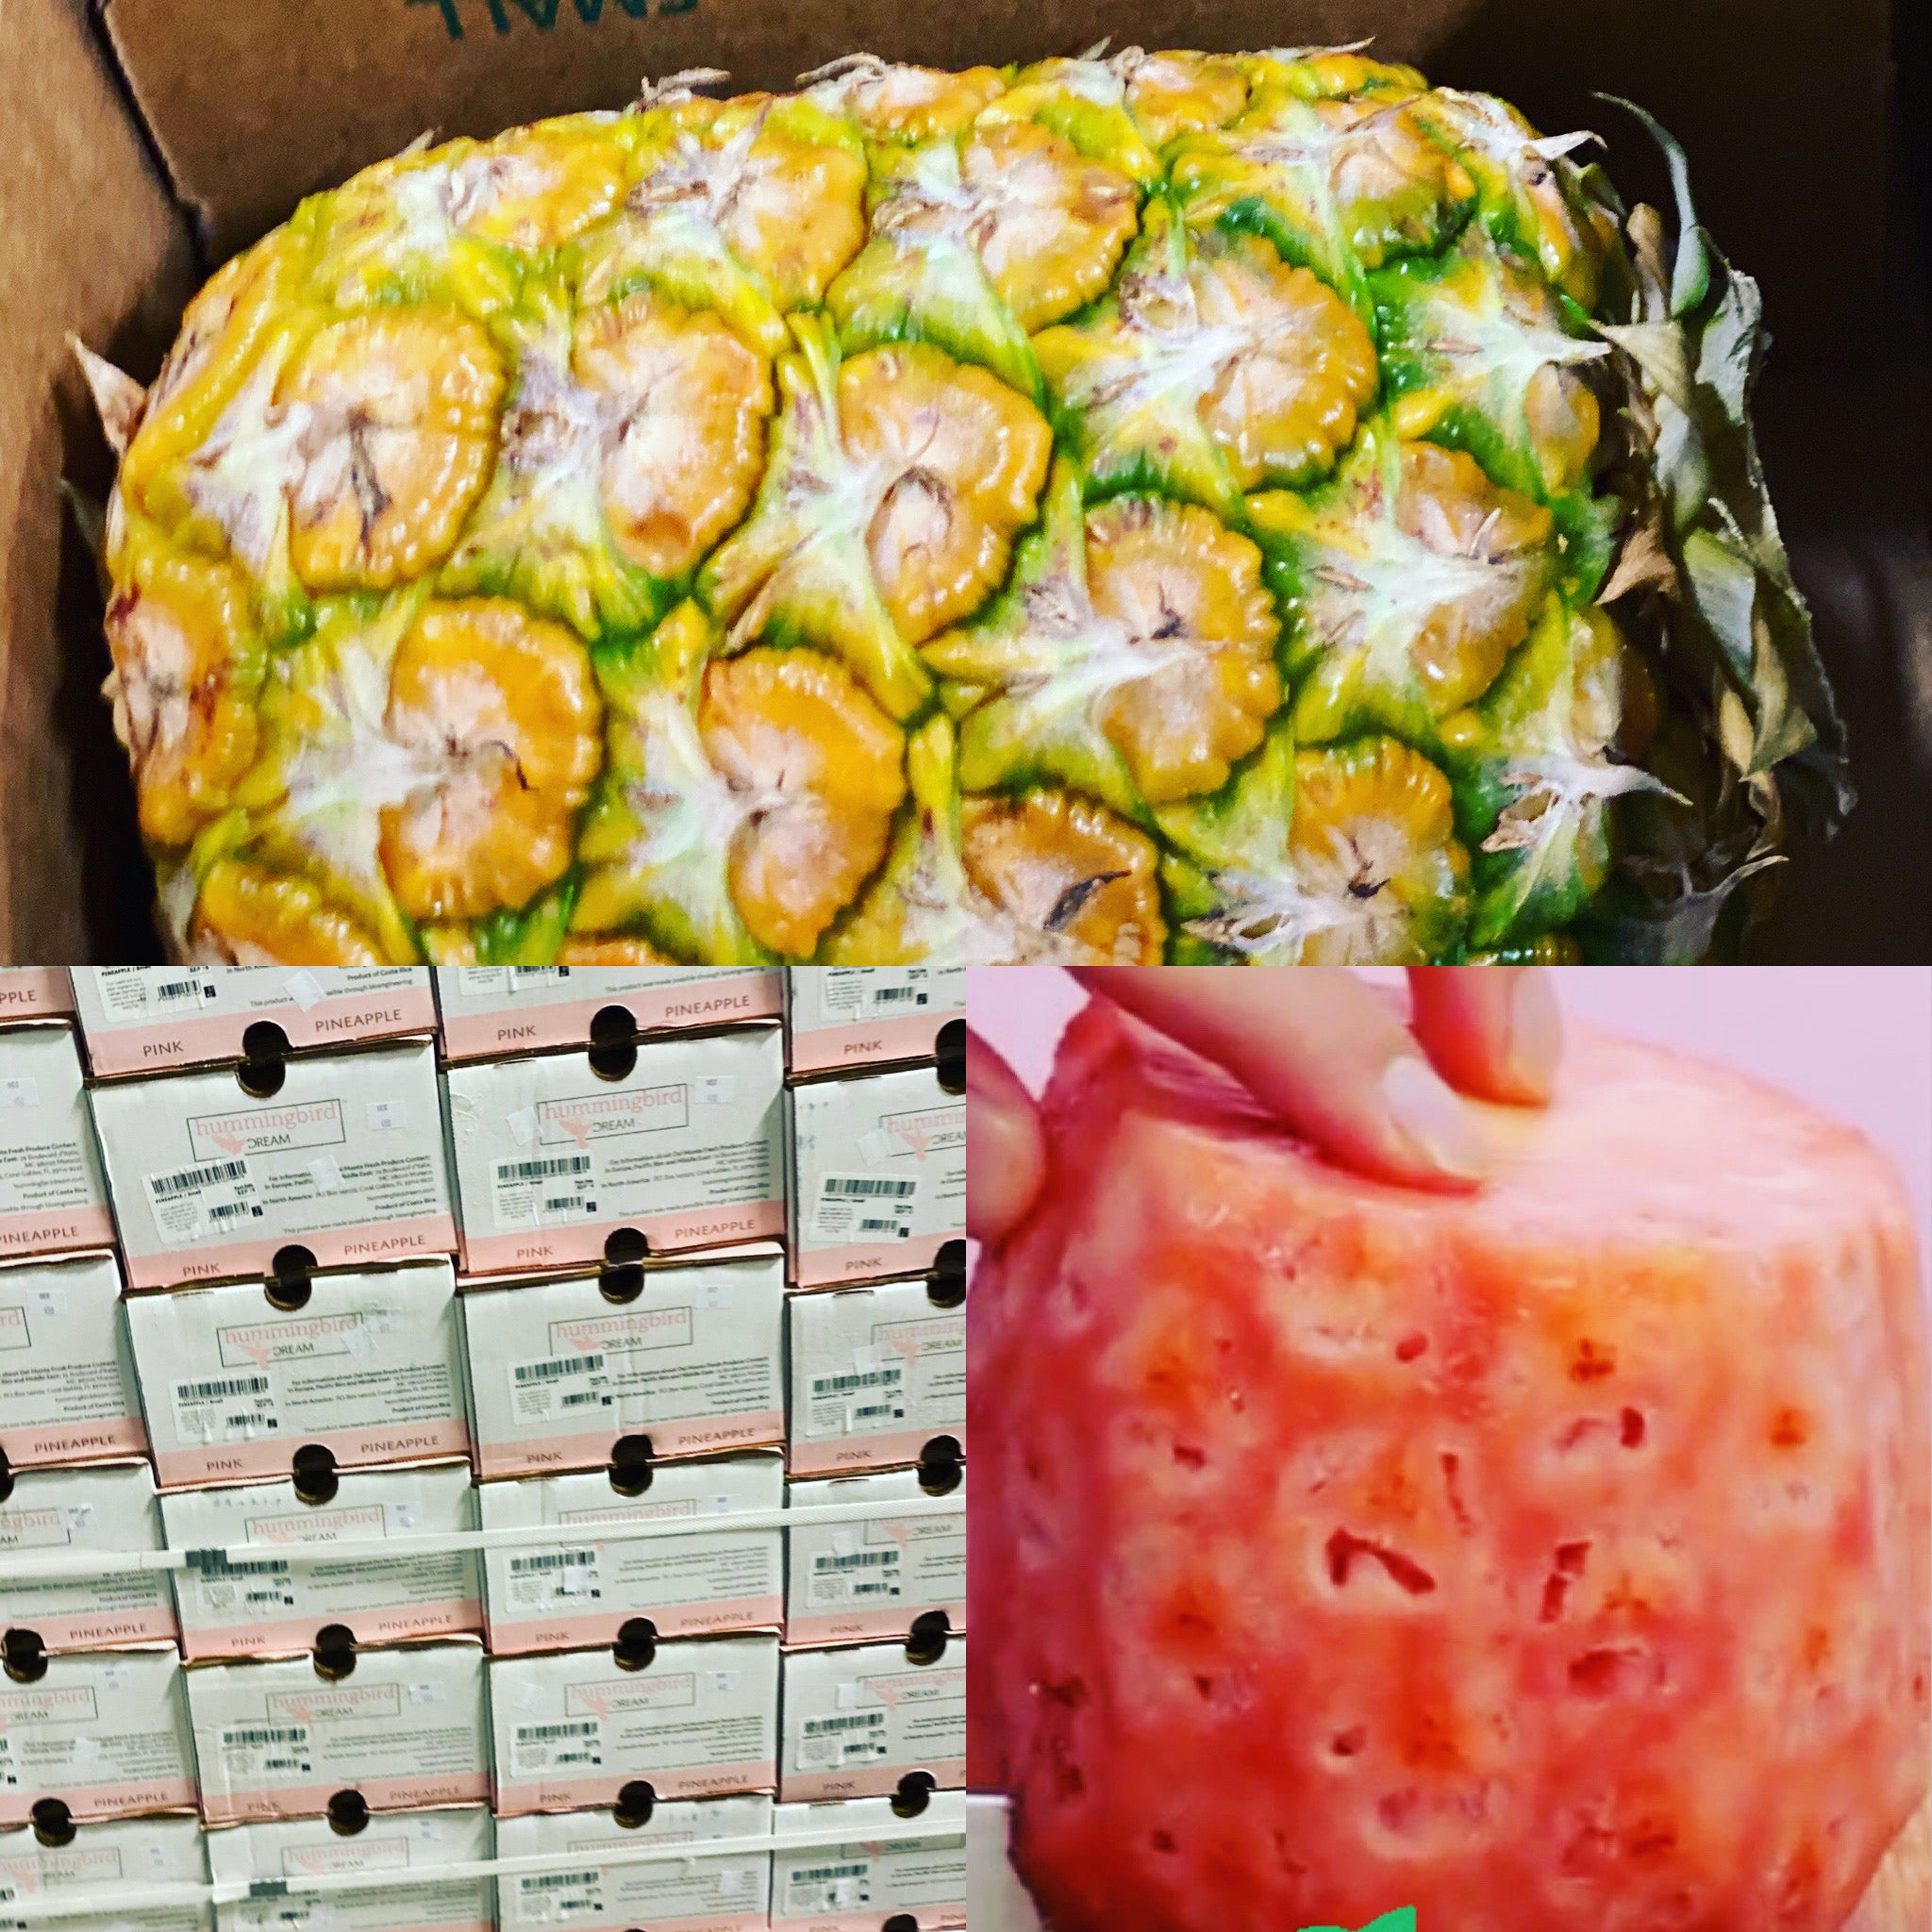 Pineapple Pinkglow (2 each)